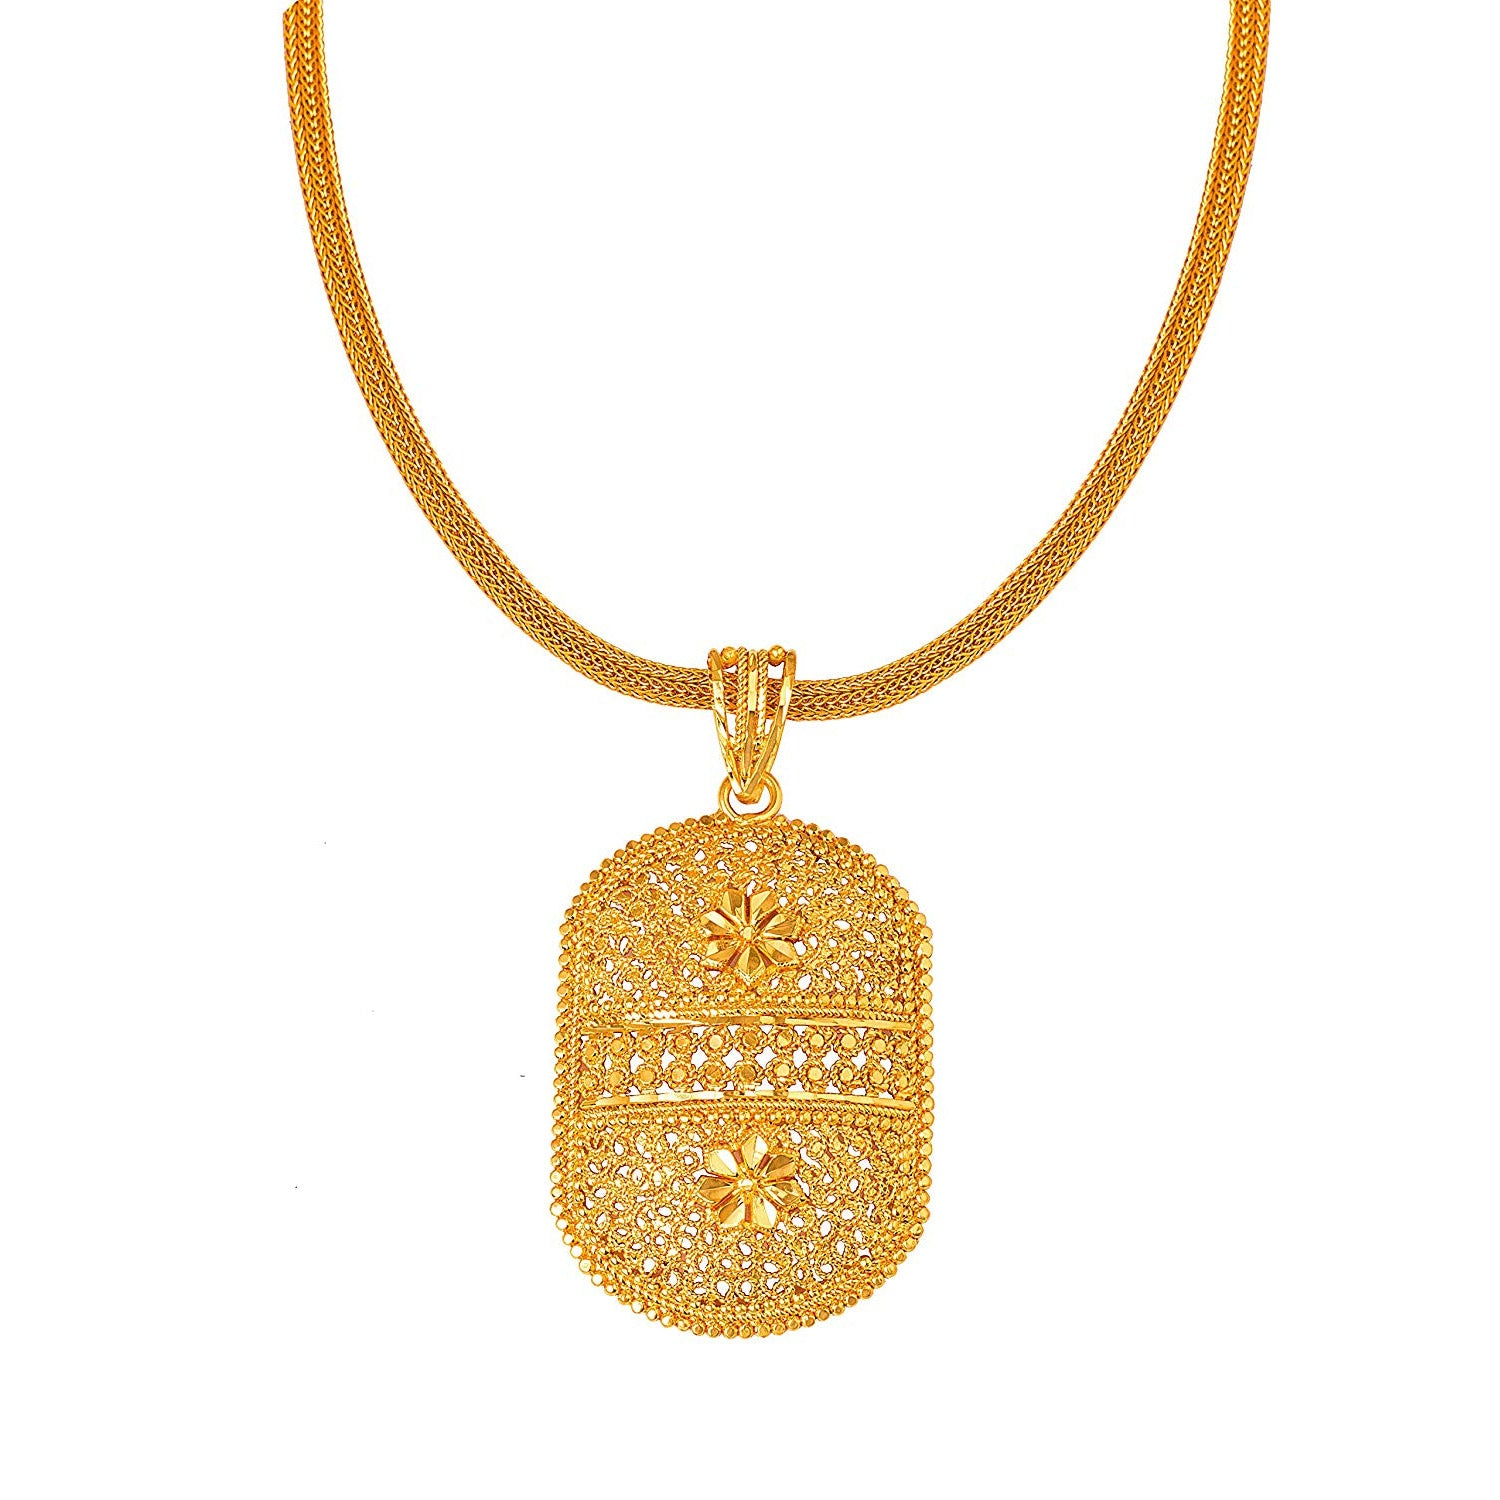 JFL-Traditional Ethnic One Gram Gold Plated Designer Pendant for Women & Girls.